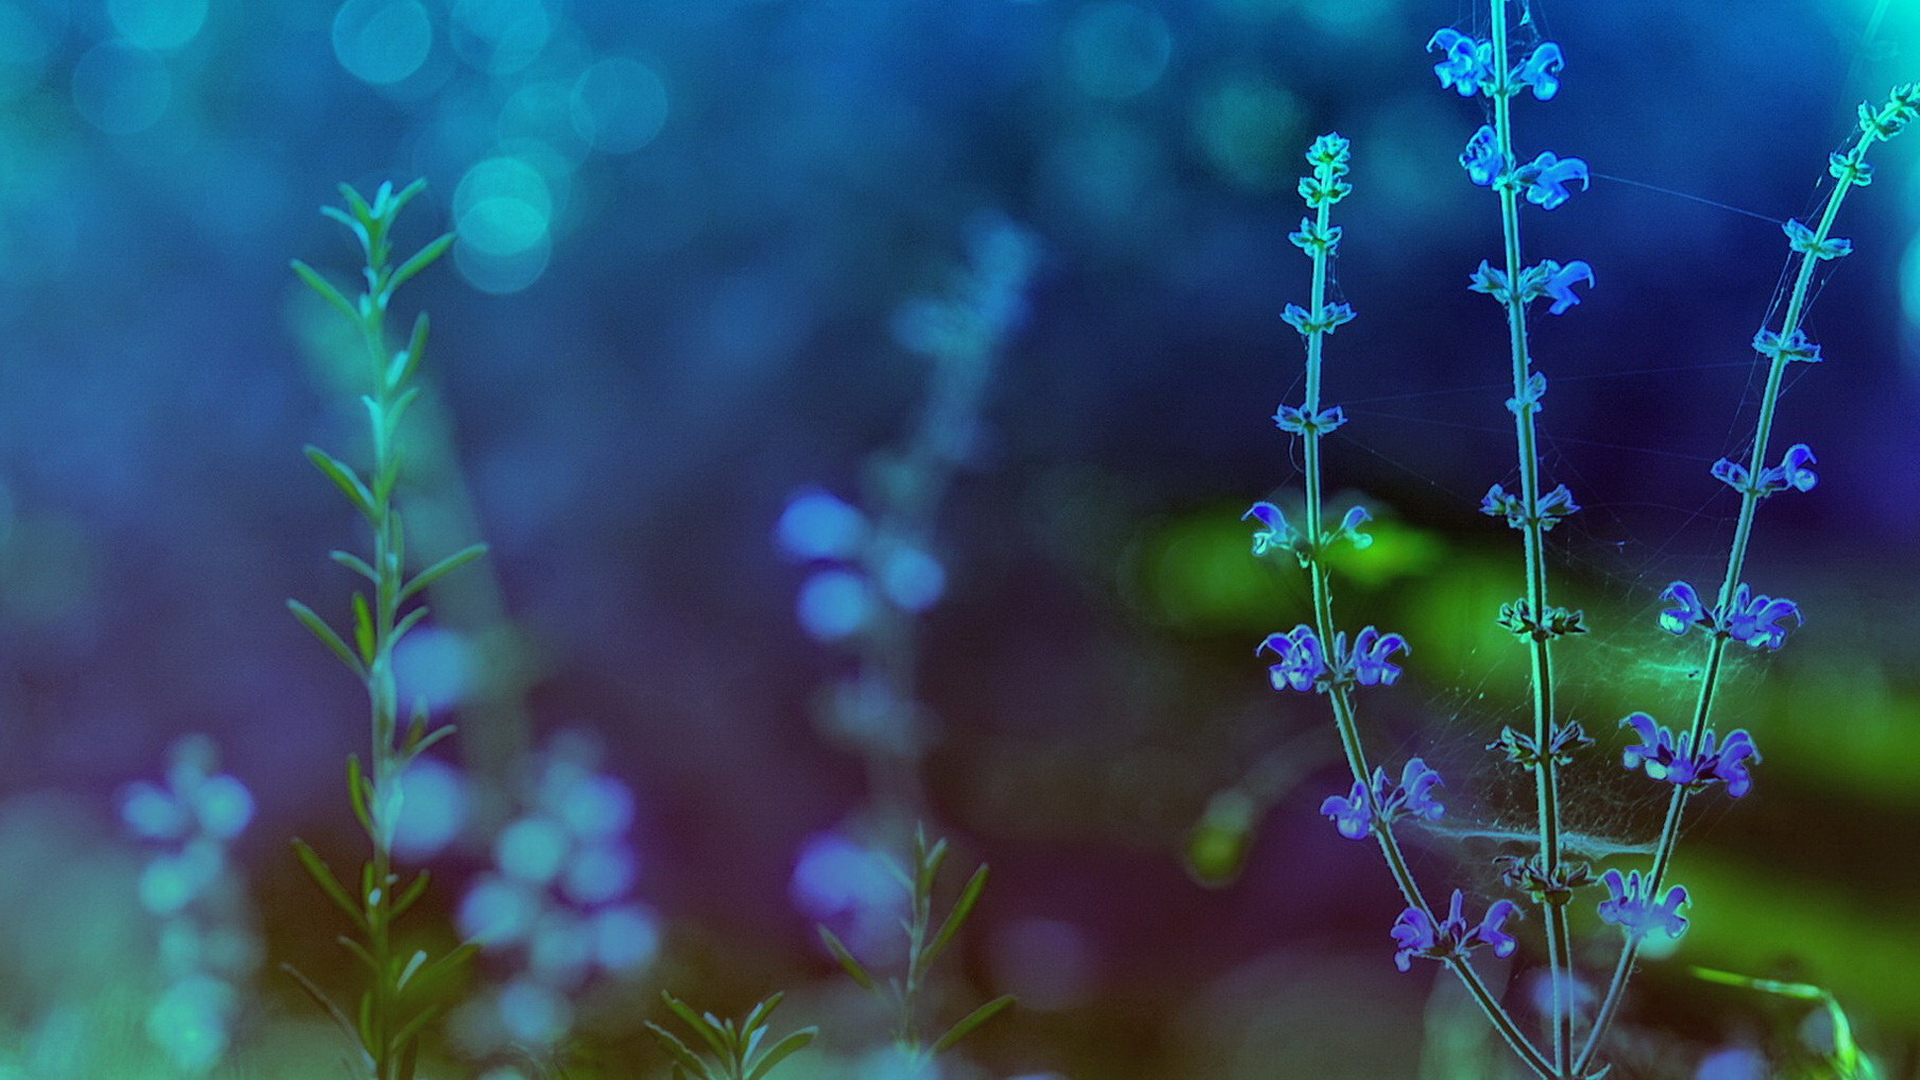 Hd wallpaper themes - Best Hd Spring Flower Theme Wallpapers Blue Background